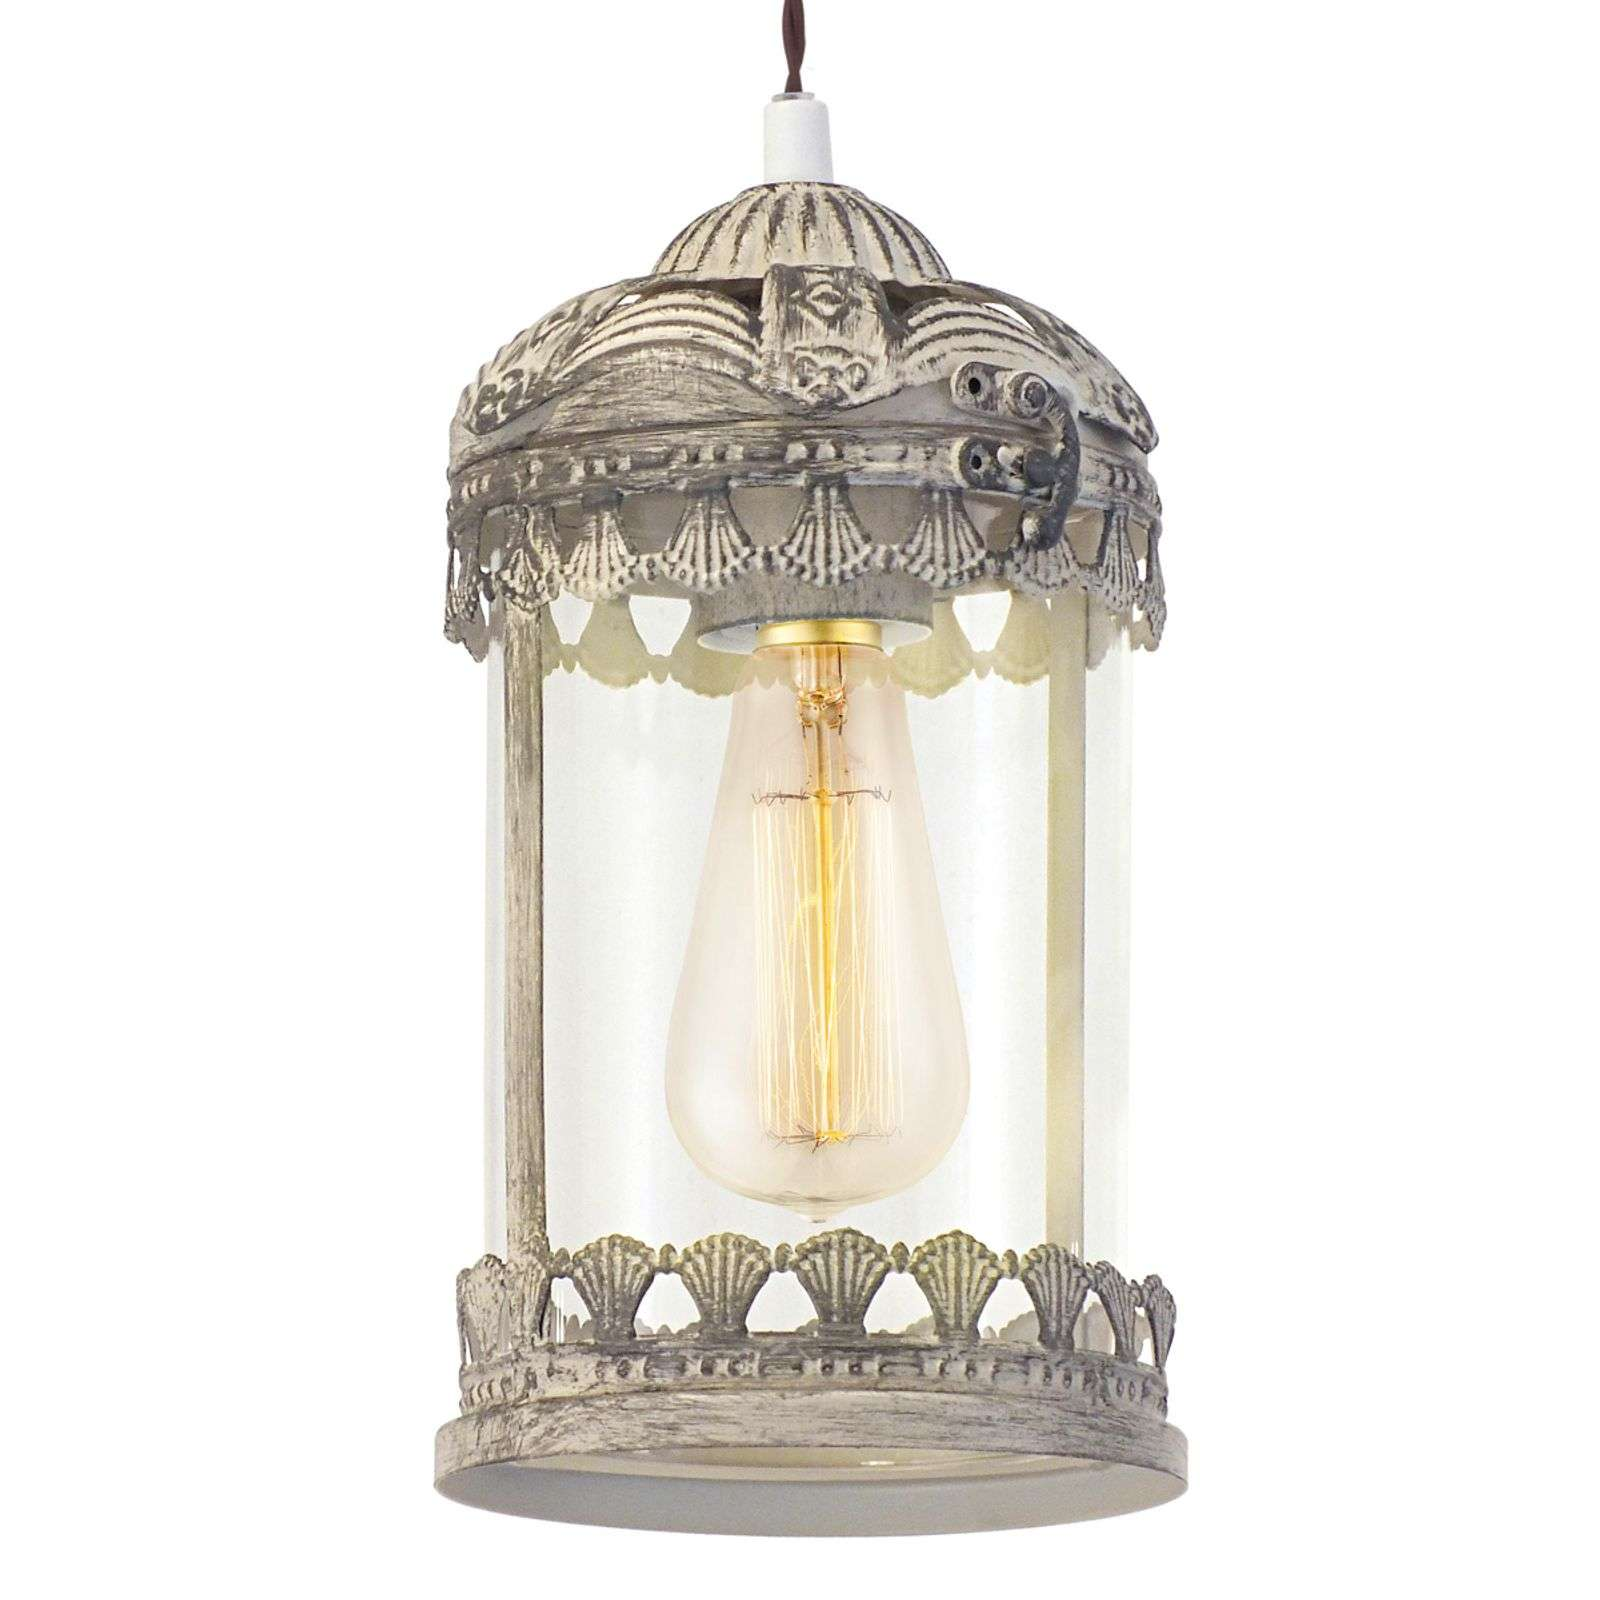 La suspension Vintage 2 brun